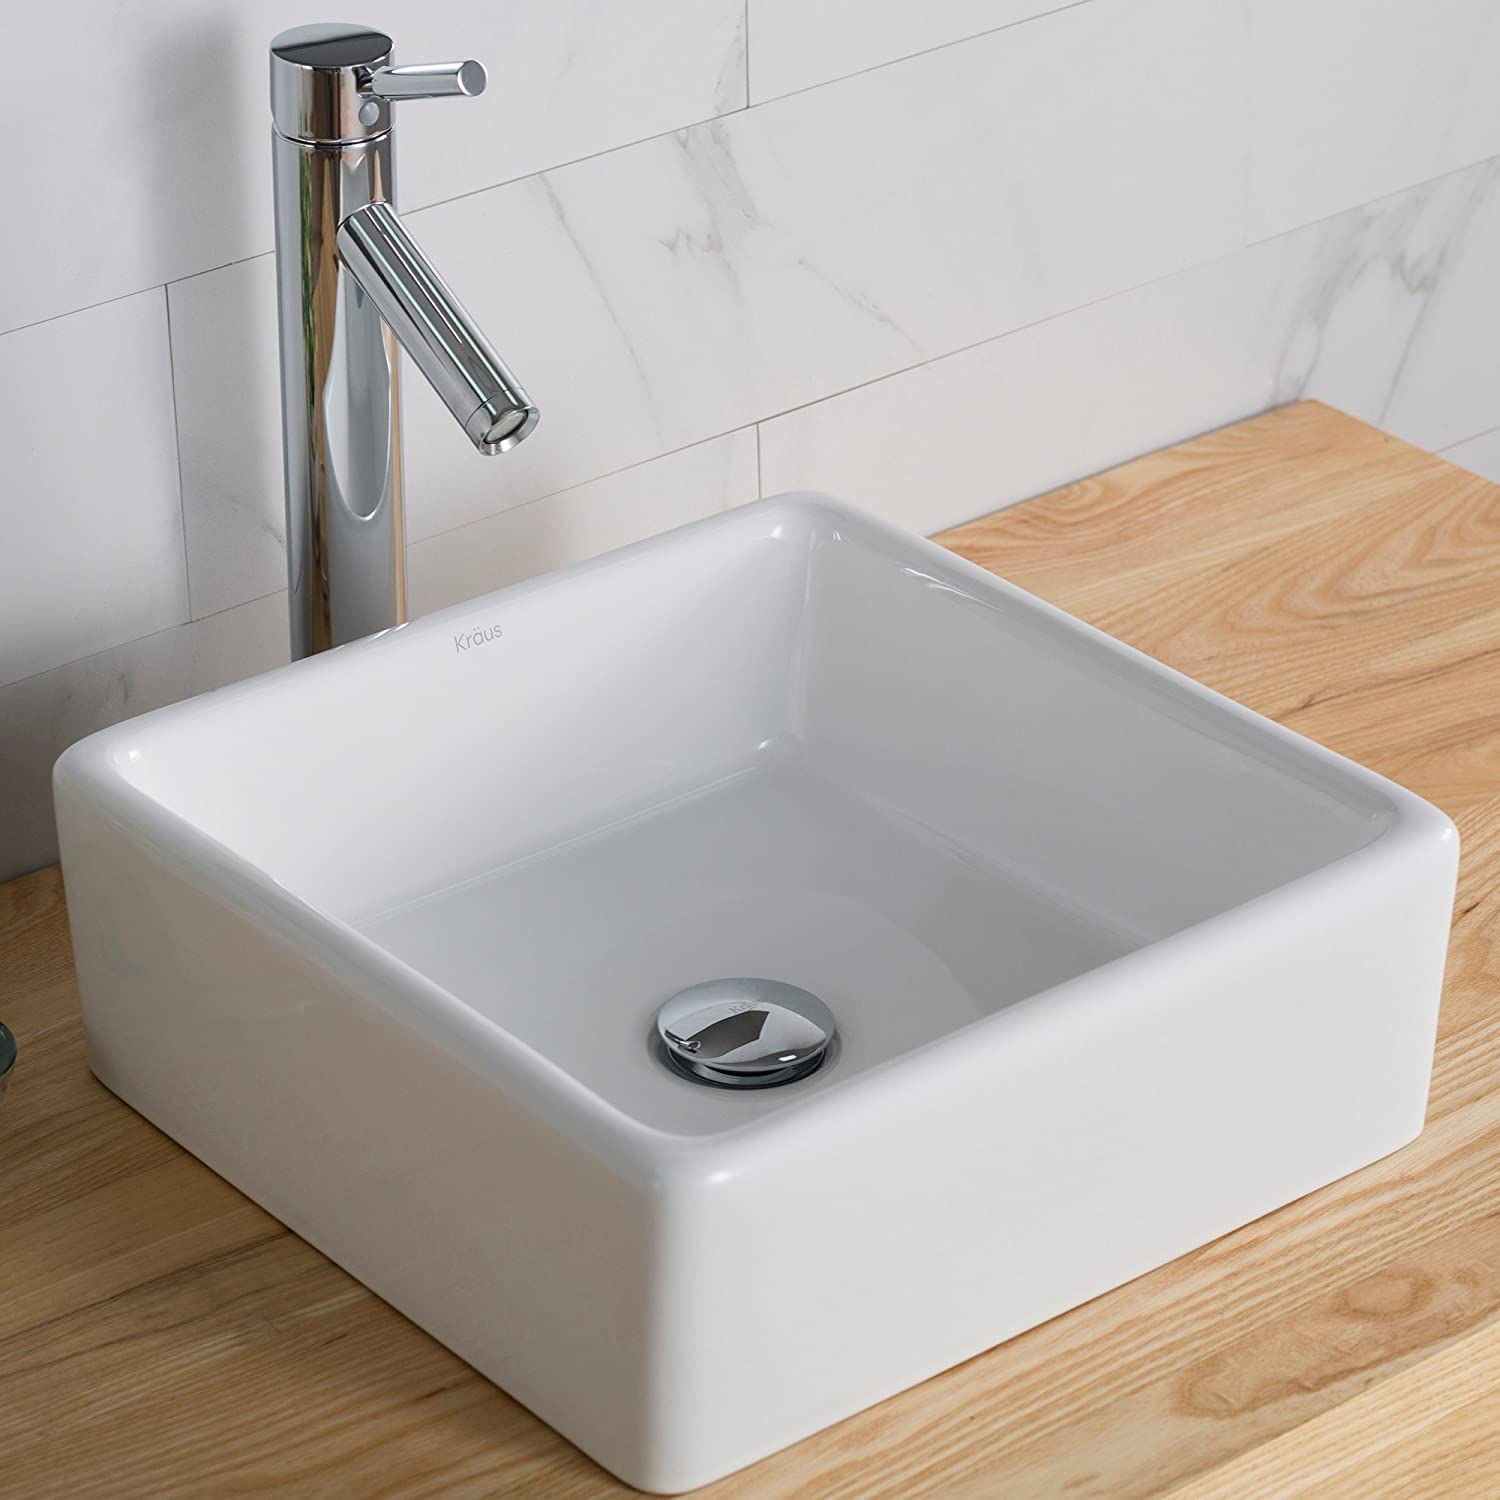 Kraus KCV-120 Ceramic Above counter Square Bathroom Sink, 15.2 x 15.2 x 5.2 inches, White